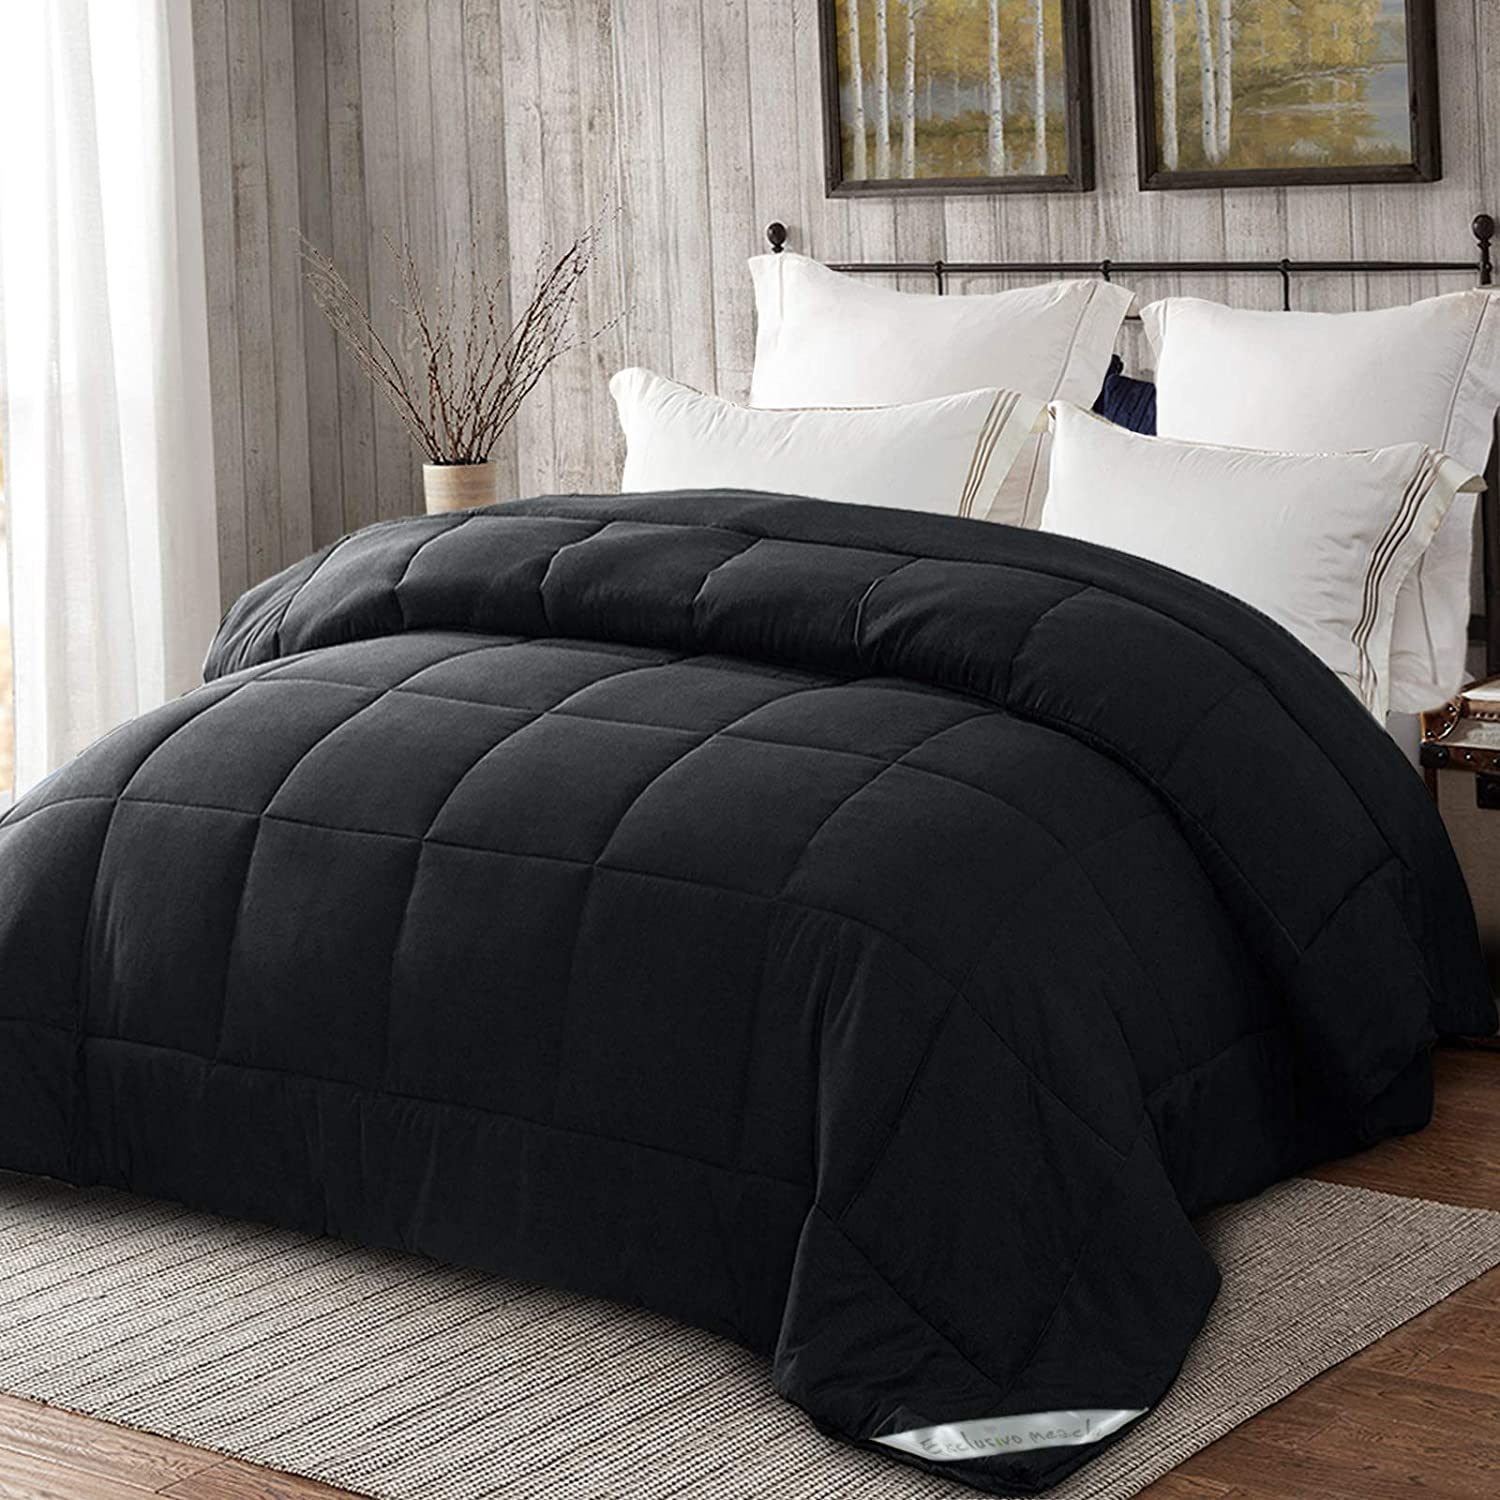 Exclusivo Popularity Mezcla King Size Boston Mall Down Du Alternative Quilted Comforter